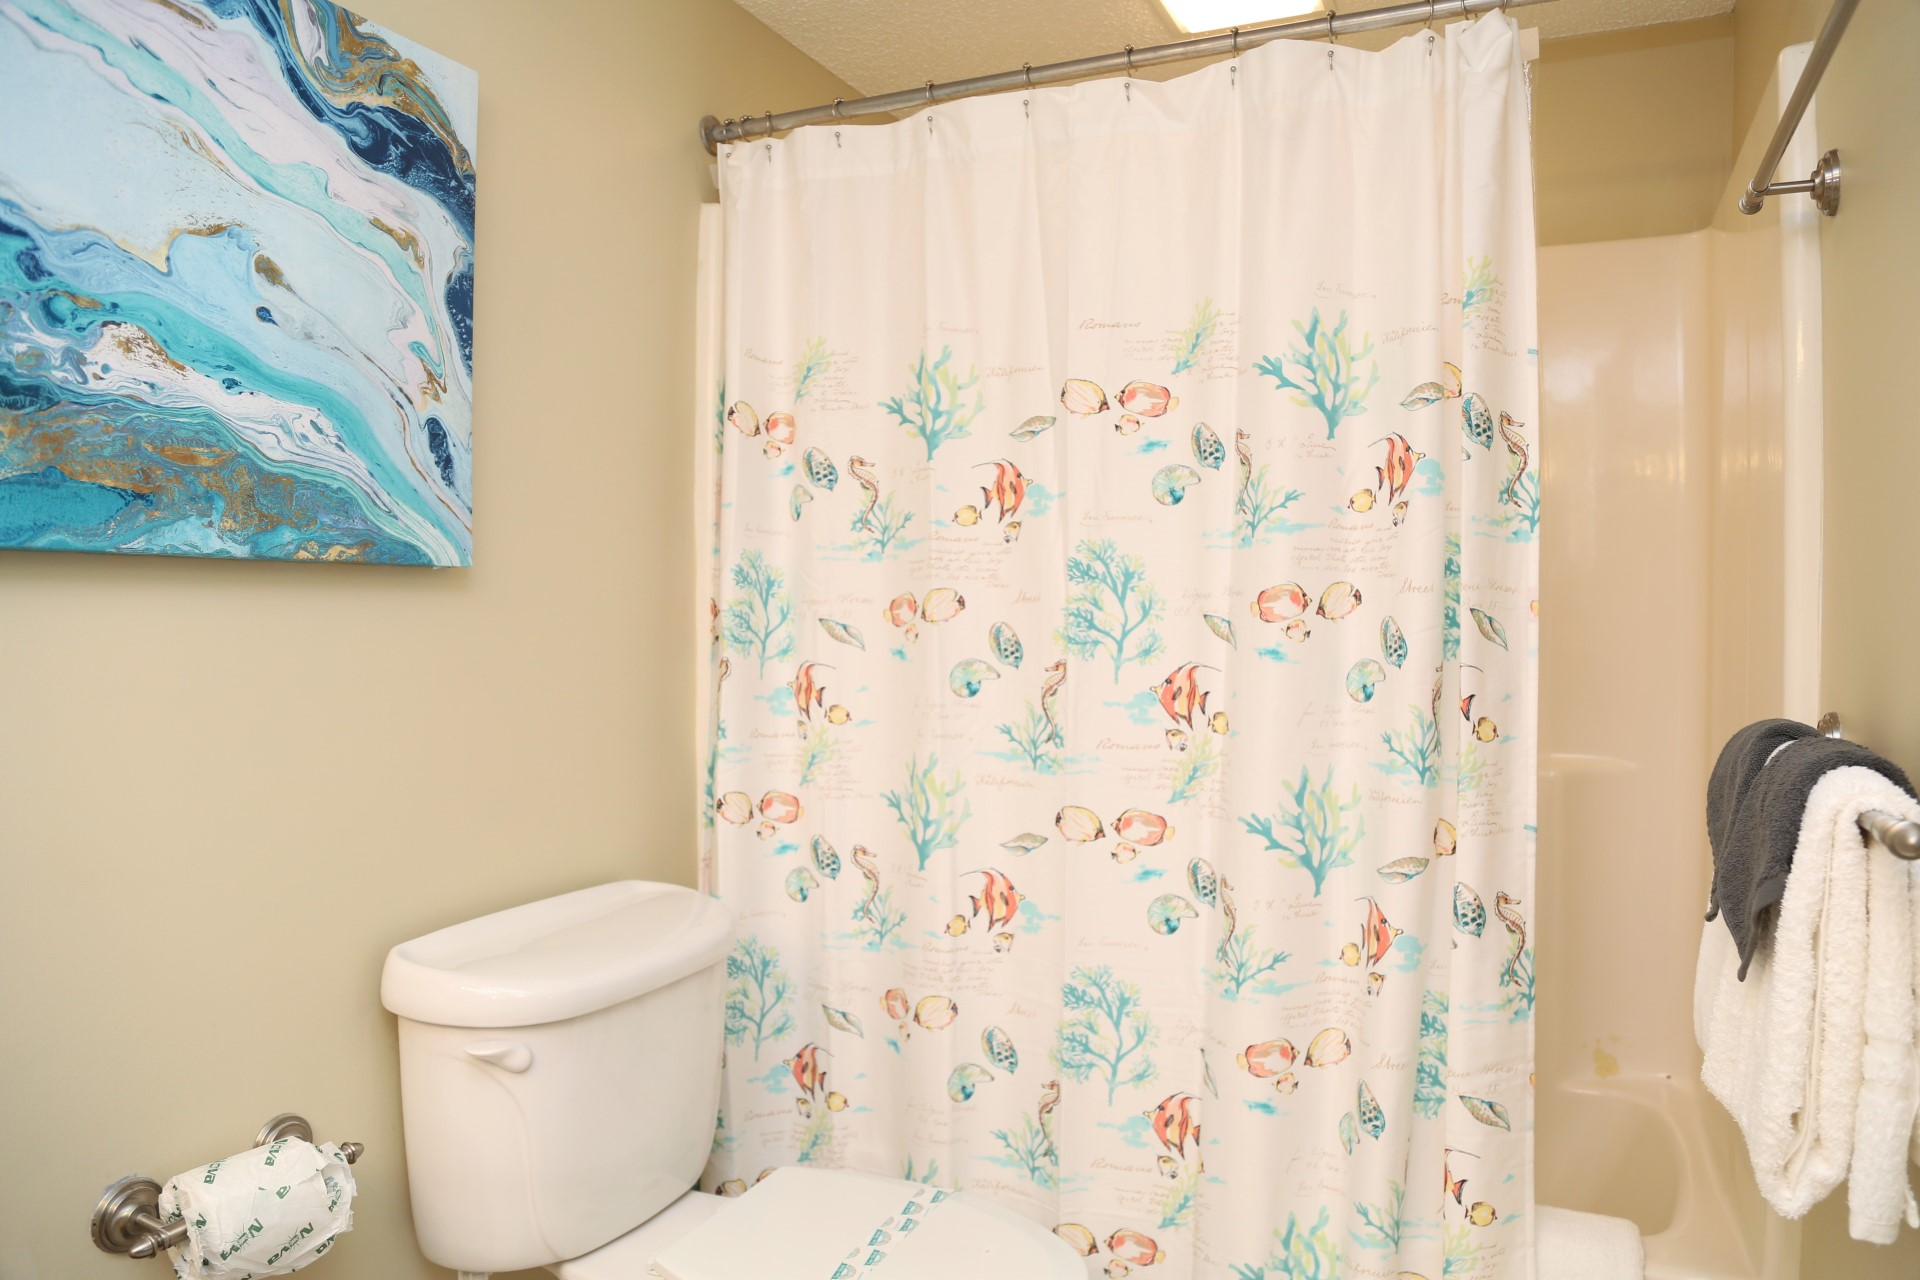 The master bathroom with shower/tub combo.